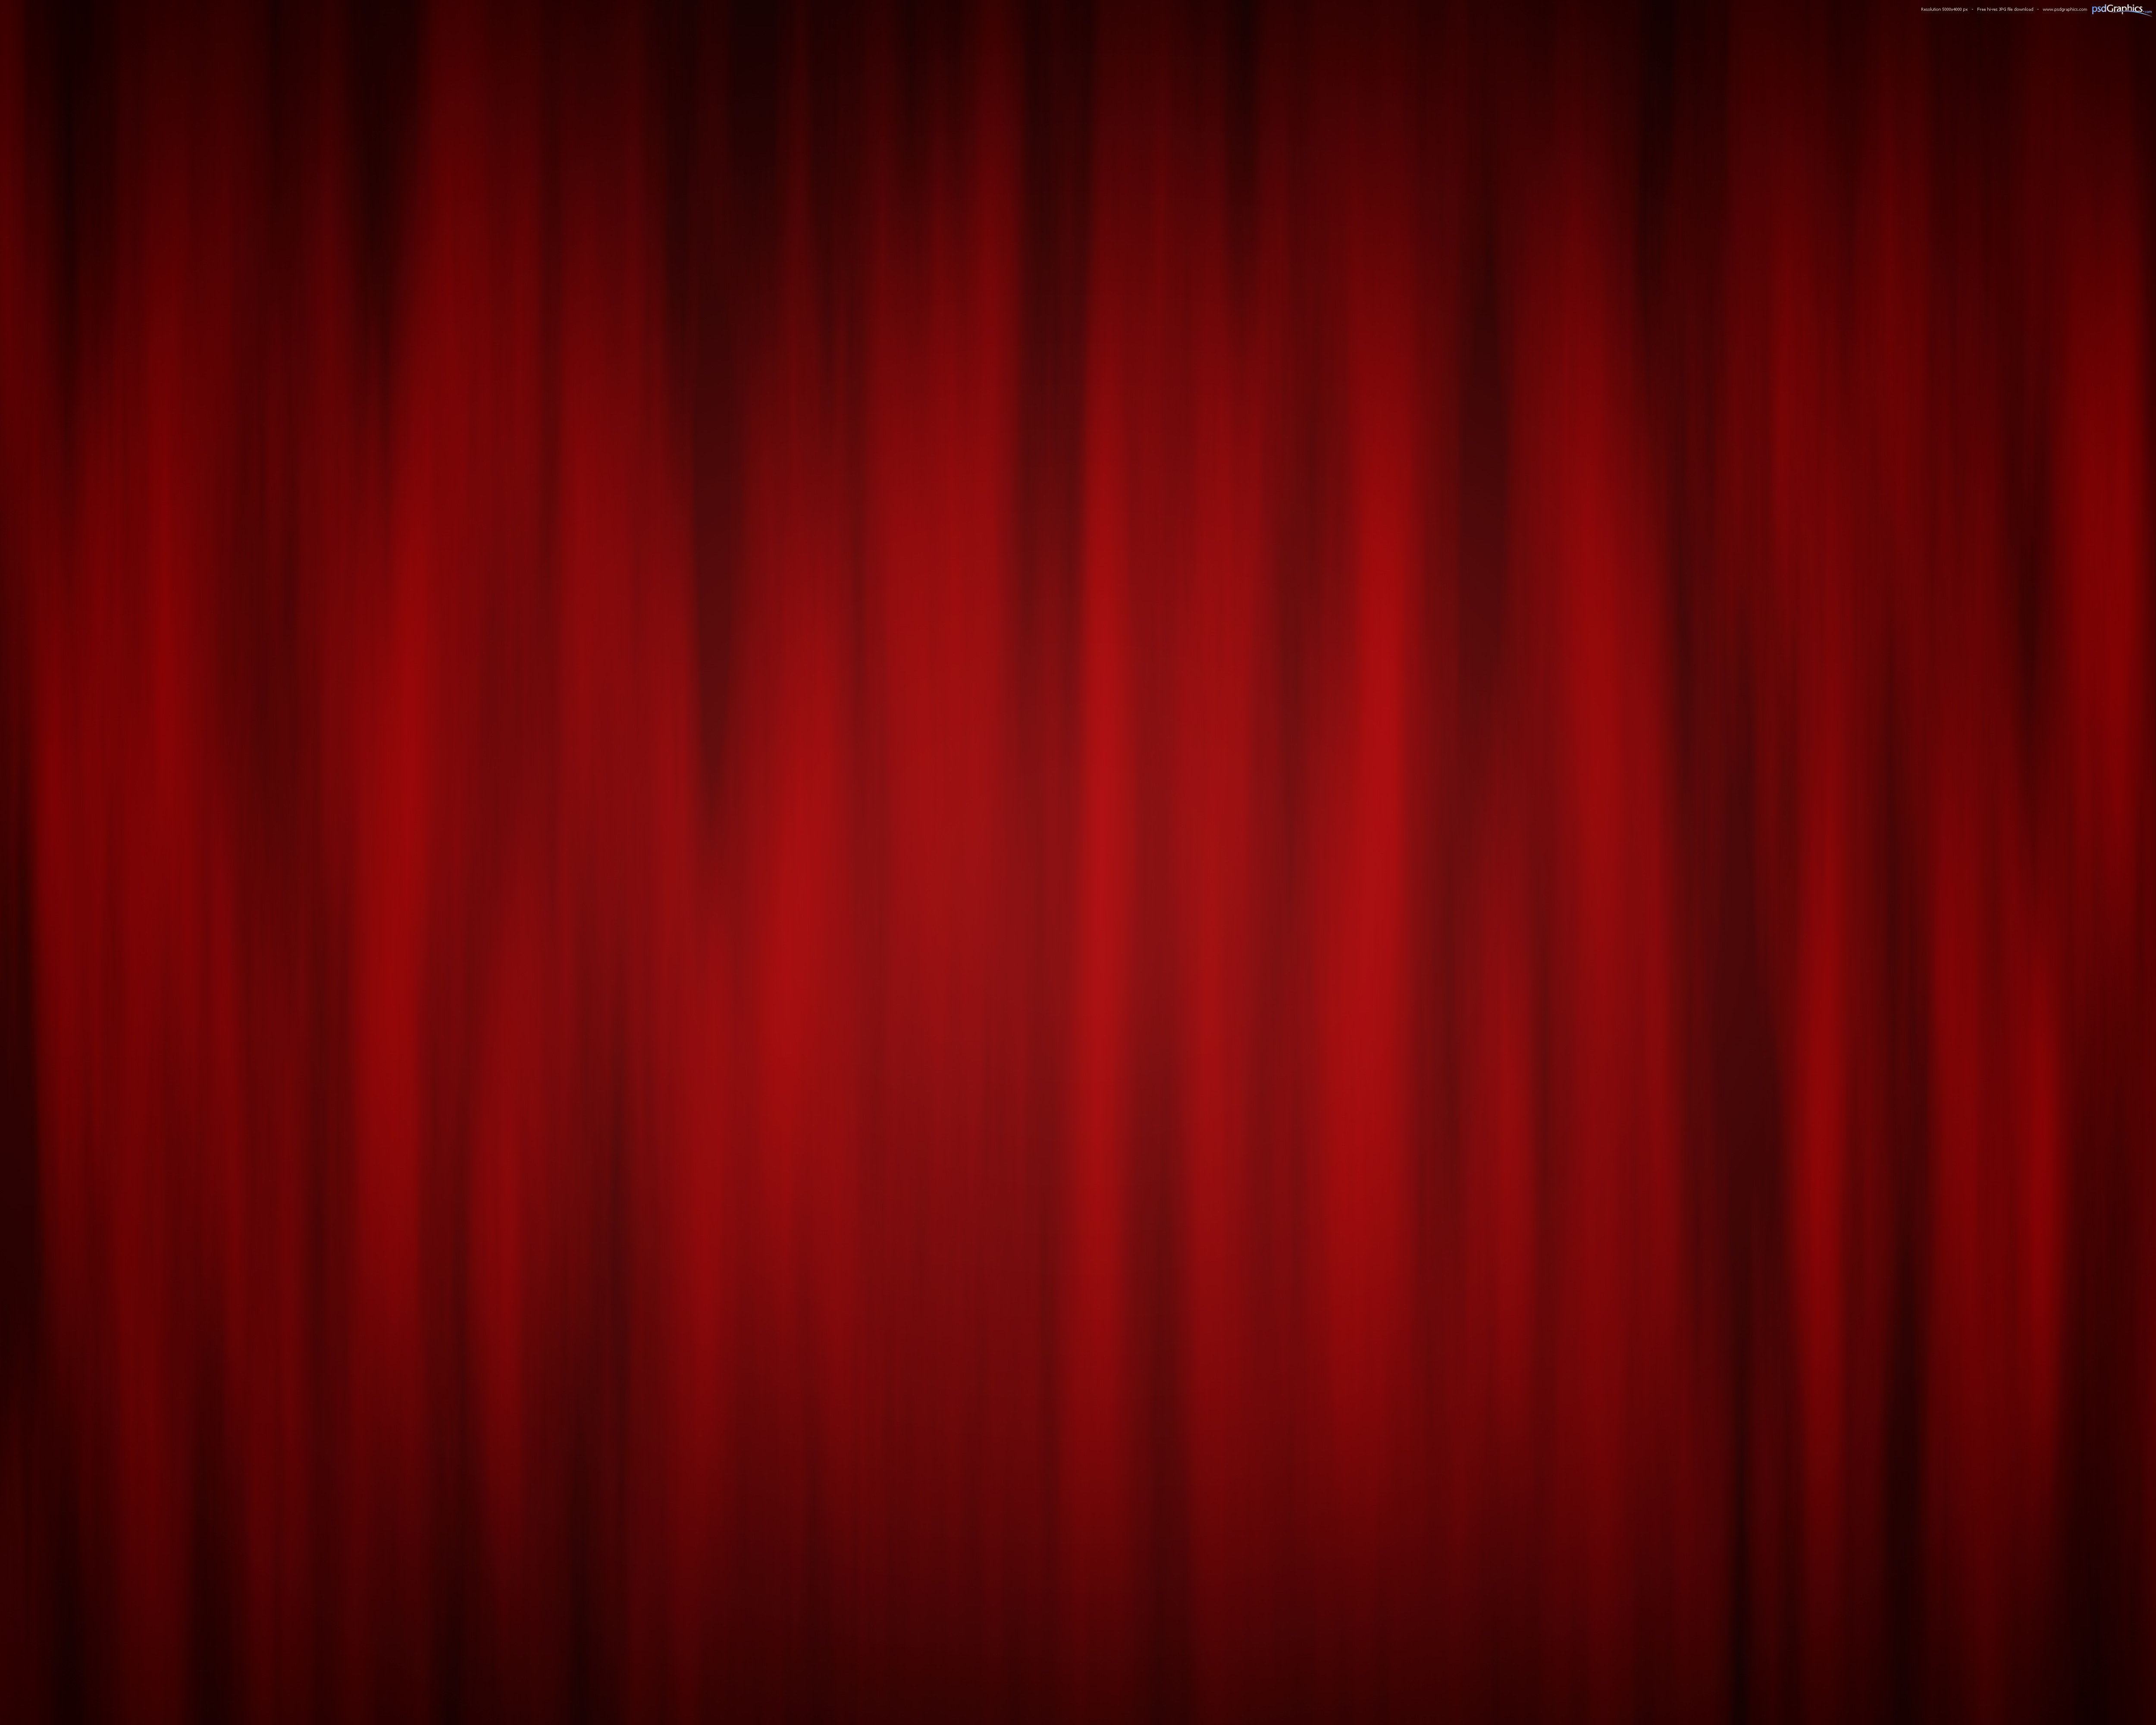 Red curtain background theatre stage PSDGraphics 5000x4000